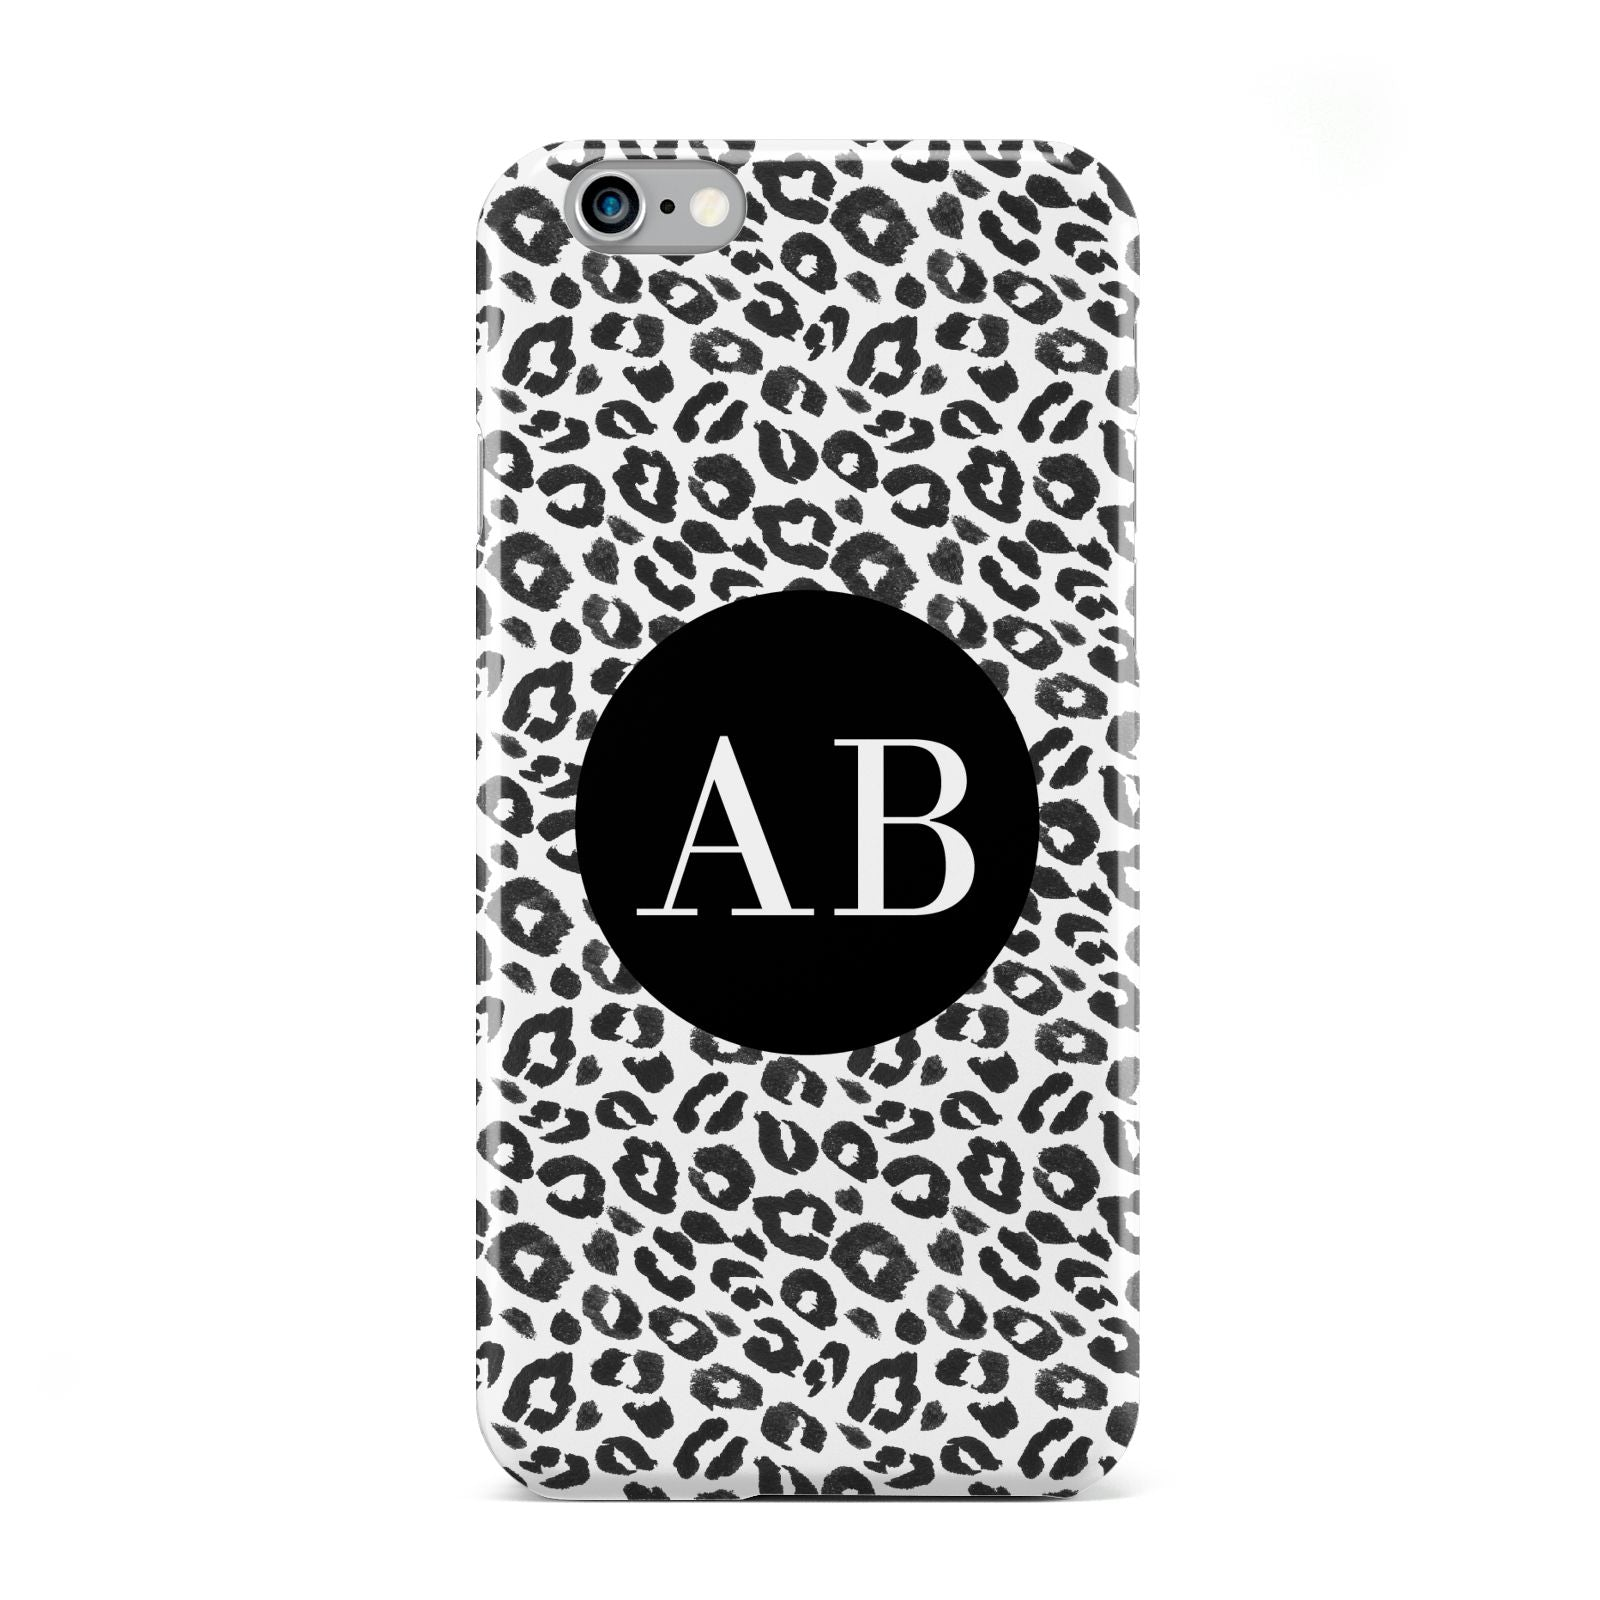 Leopard Print Black and White Apple iPhone 6 Case